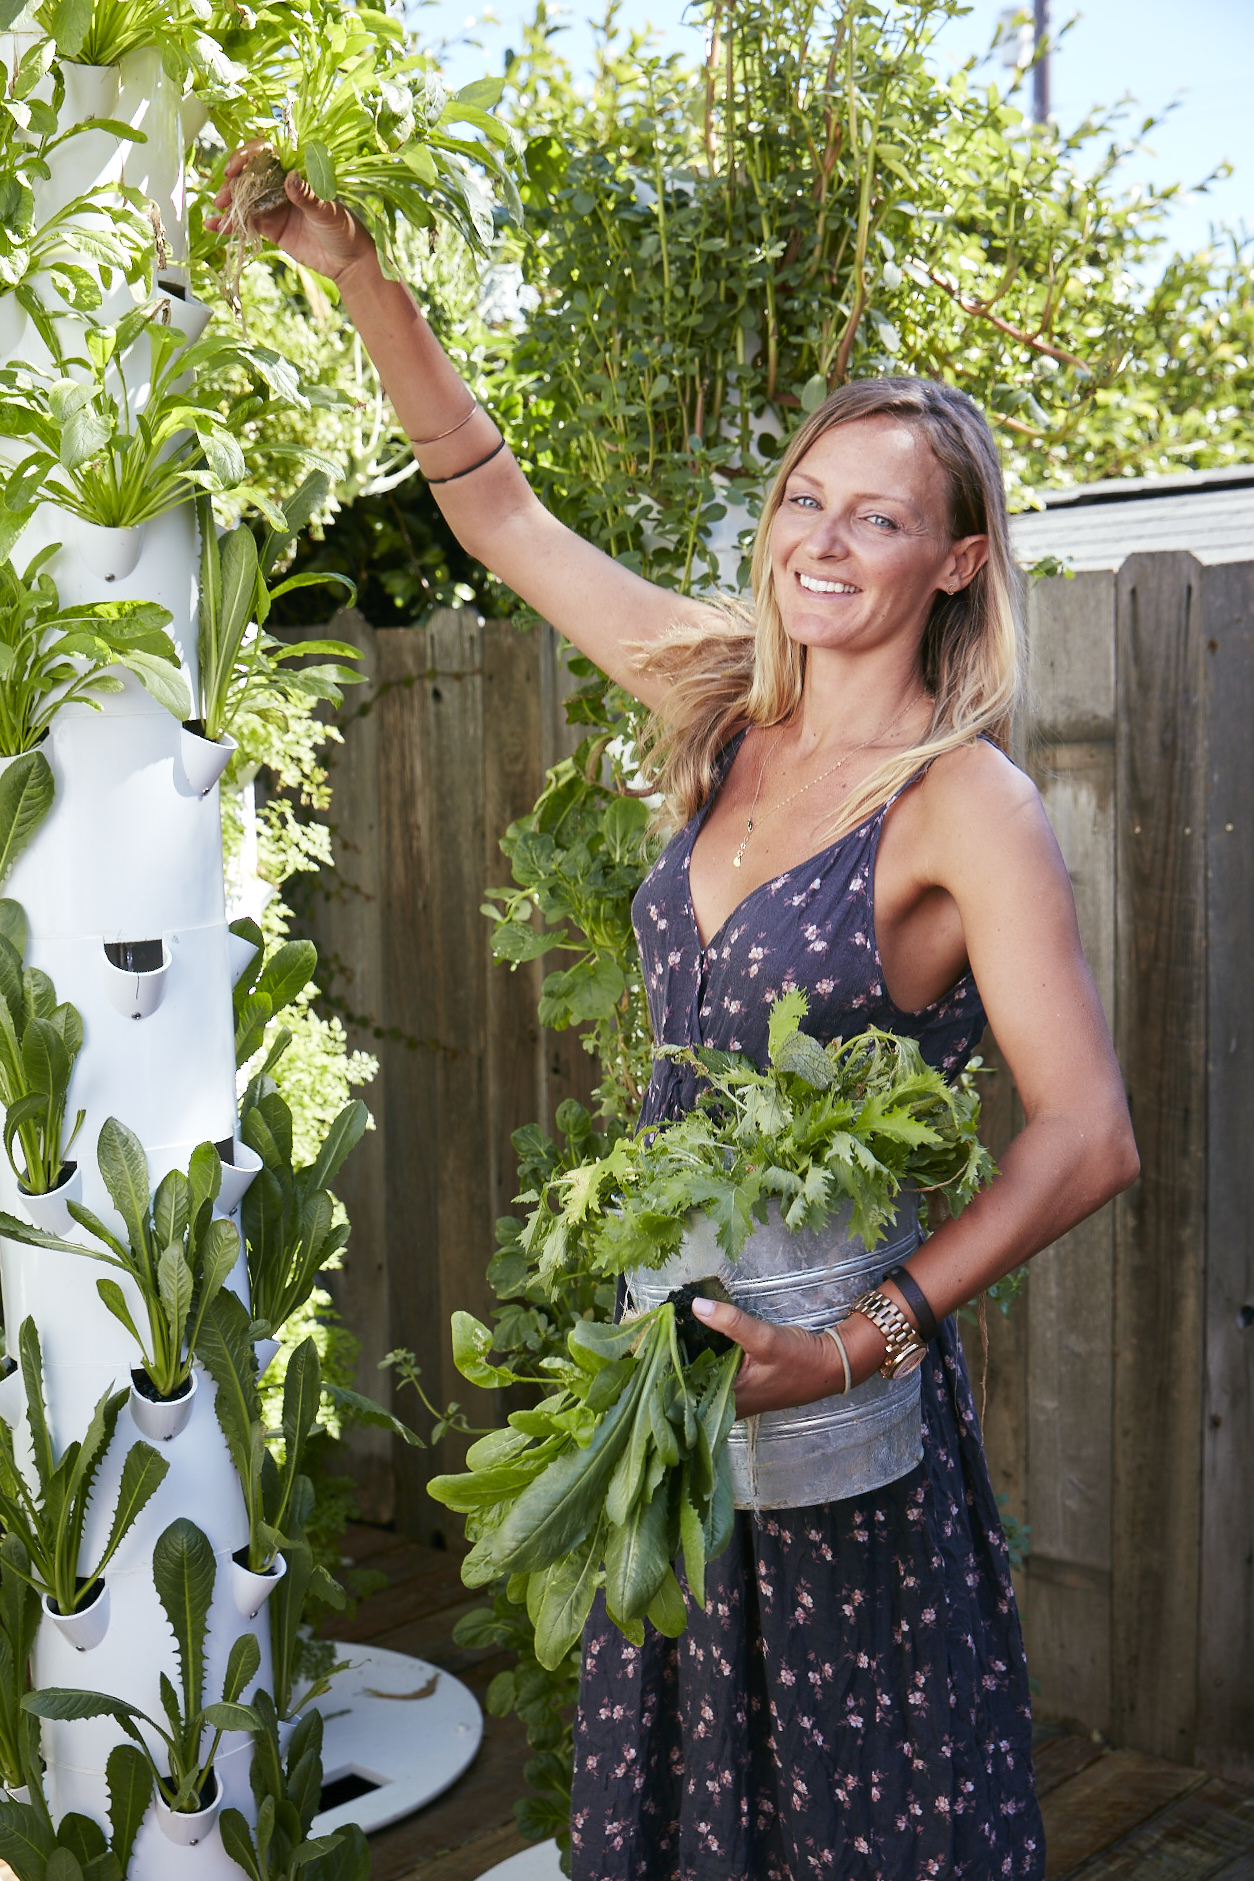 How a former pro beach volleyball athlete stays fit with... gardening (Los Angeles Times)